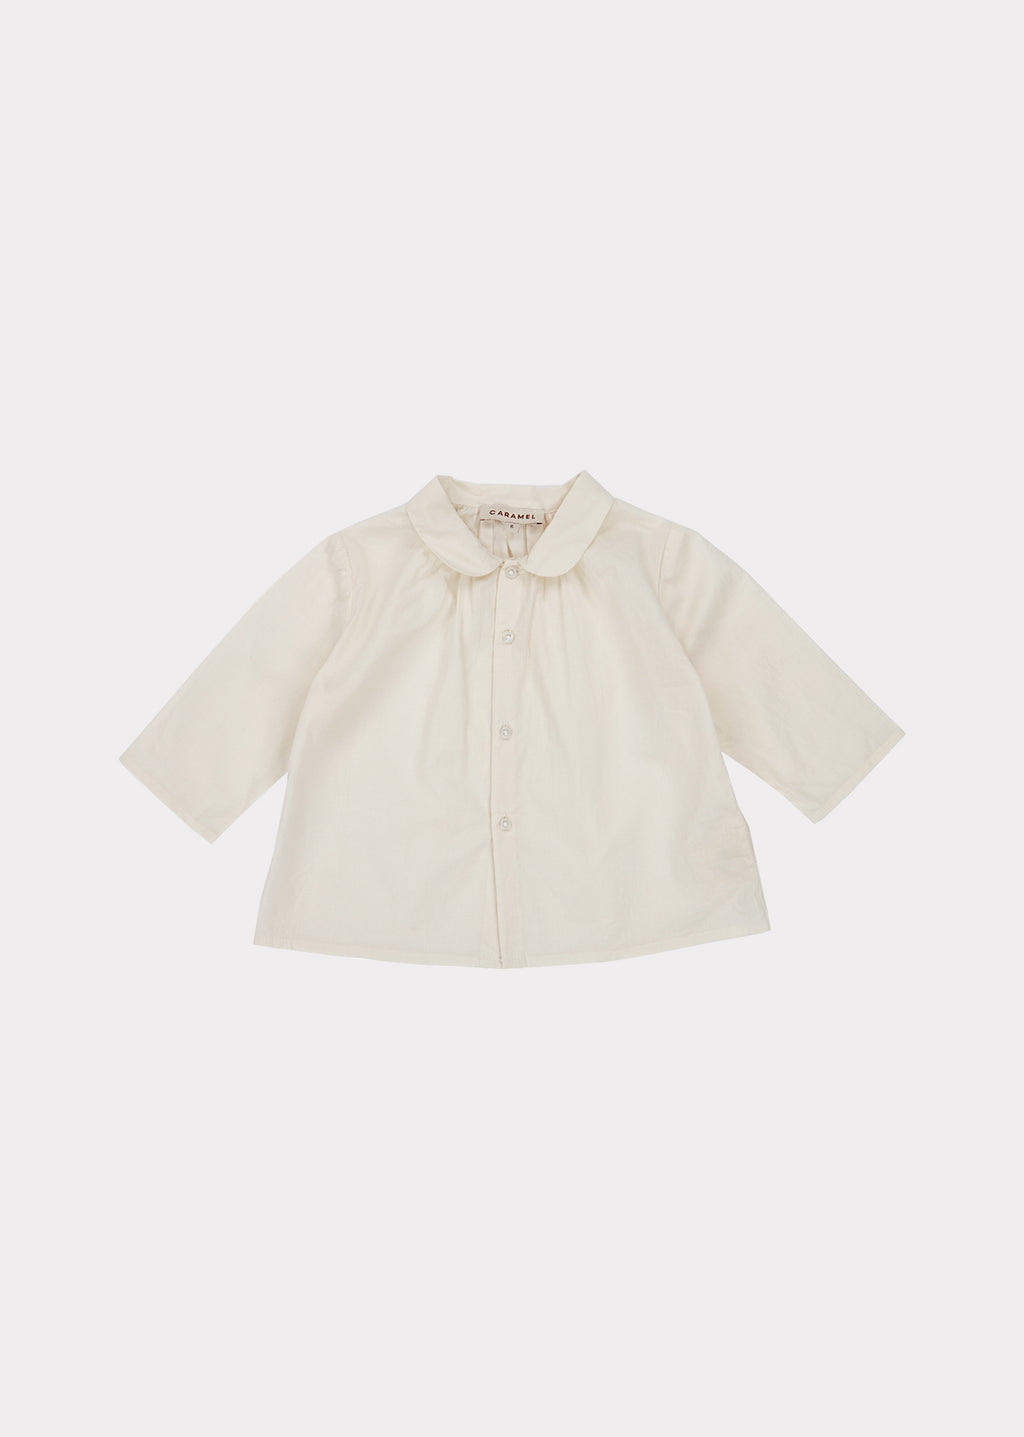 Westminster Baby Shirt - White